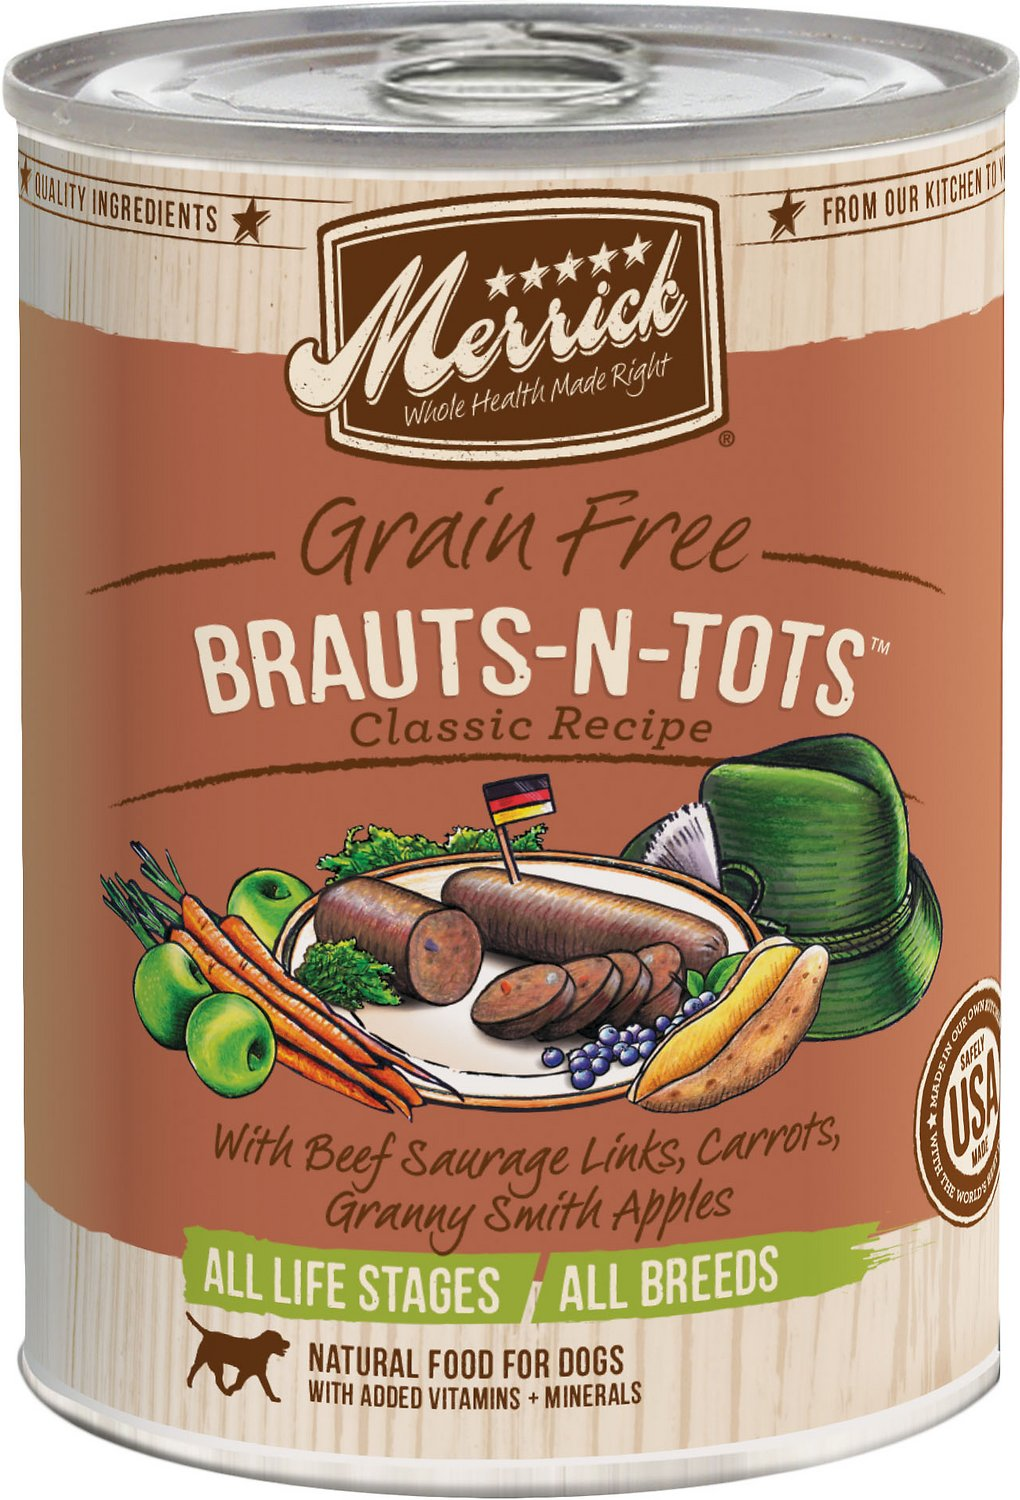 Merrick Grain-Free Brauts-n-Tots Canned Dog Food, 13.2-oz